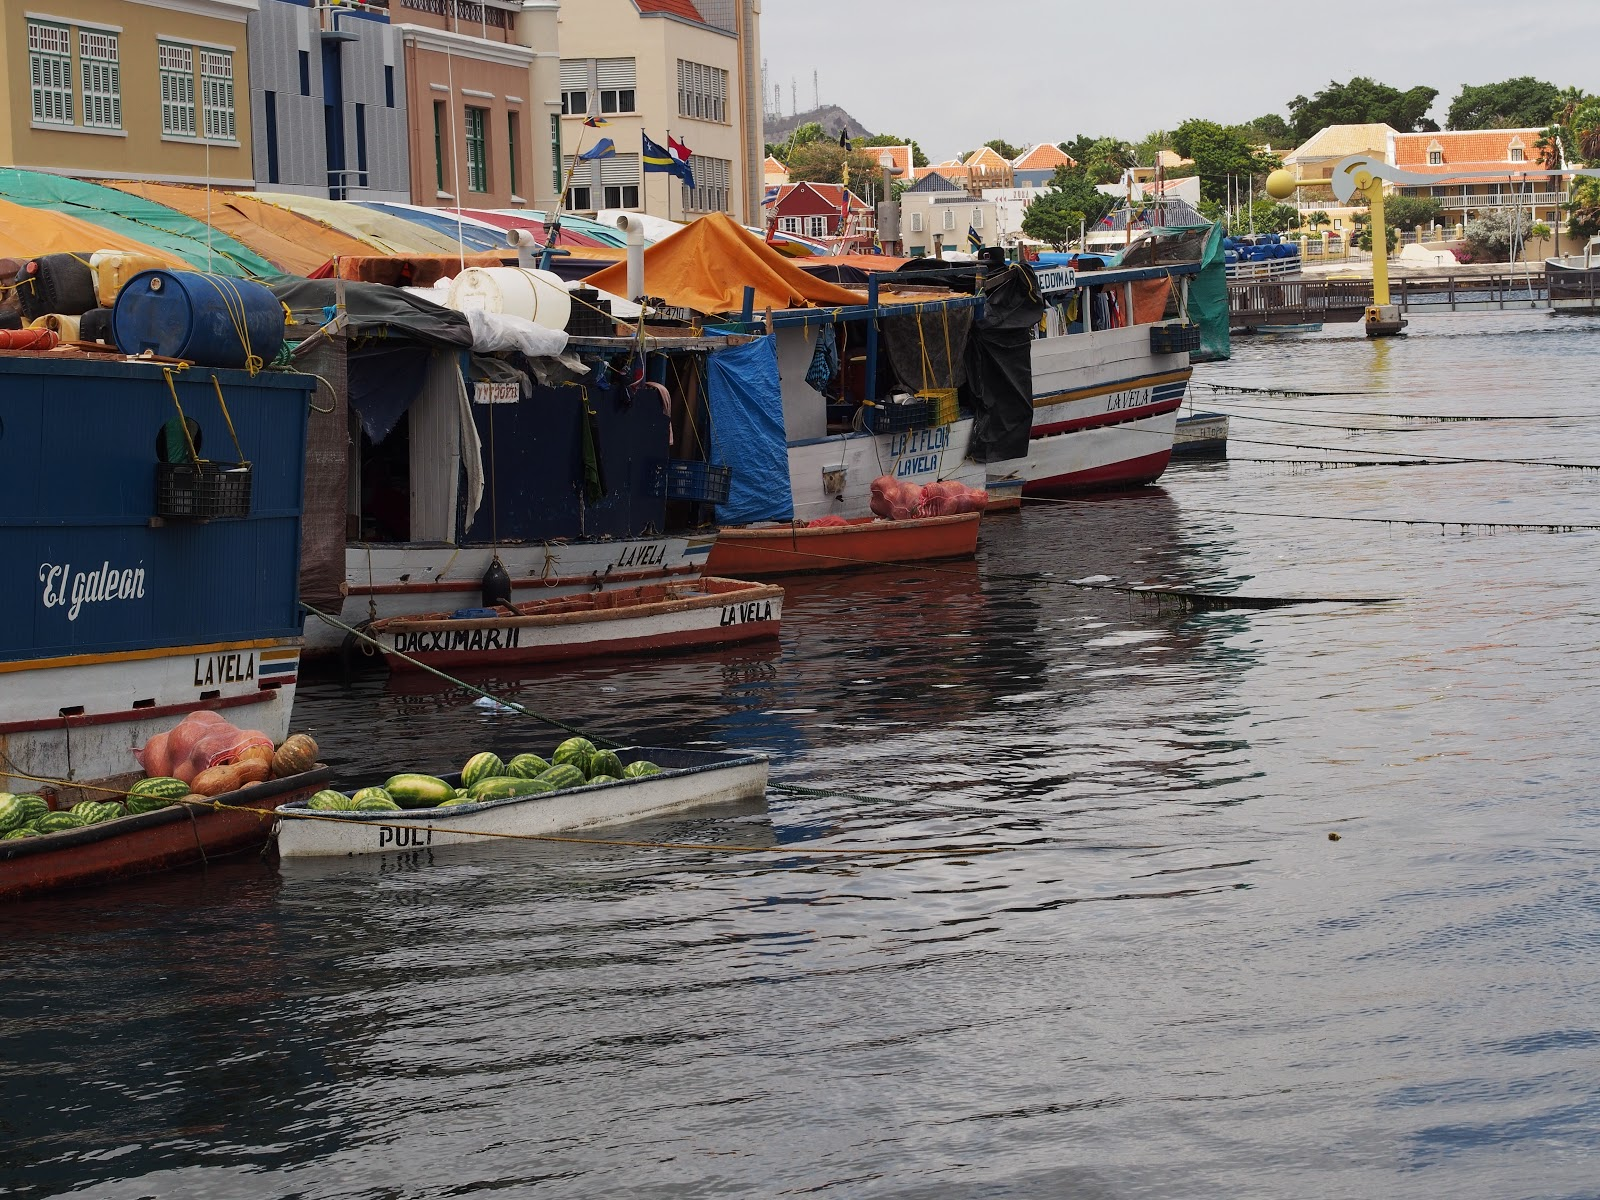 Floating Market, Williamstad, Curacao 2014 #floatingmarket #williemstad #curacao